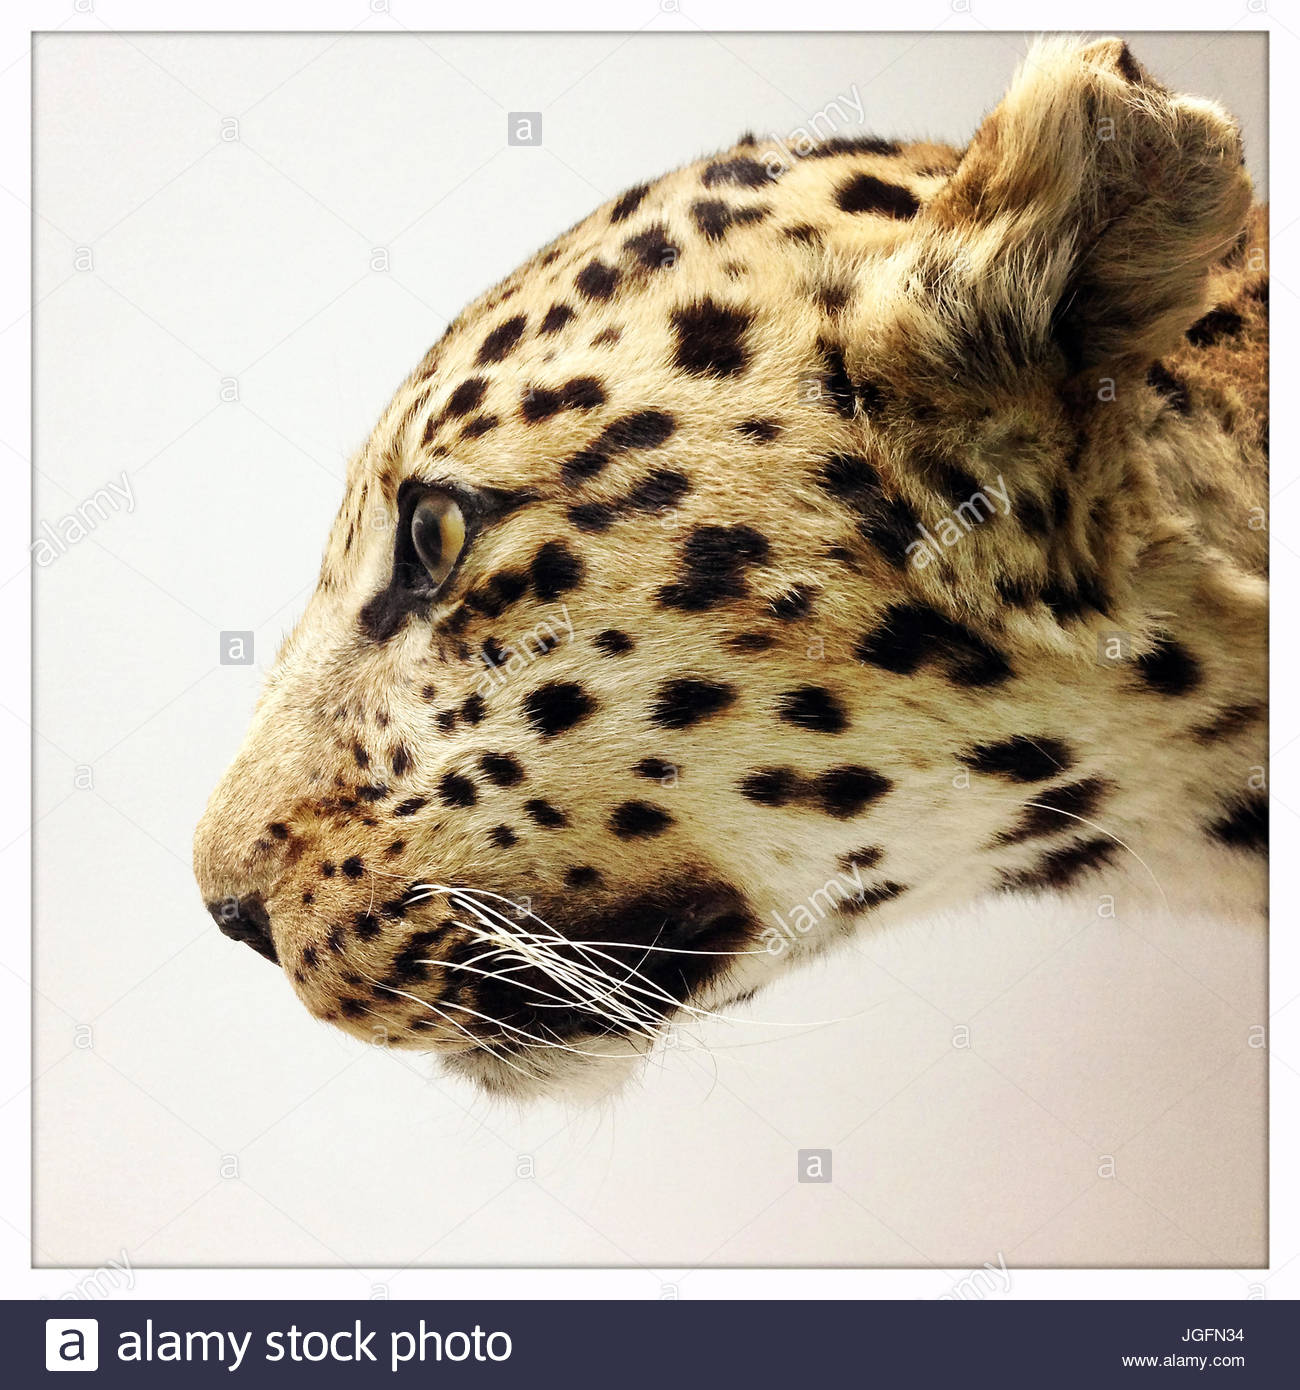 A stuffed leopard on display in the Natural History Museum in Beijing, China. - Stock Image